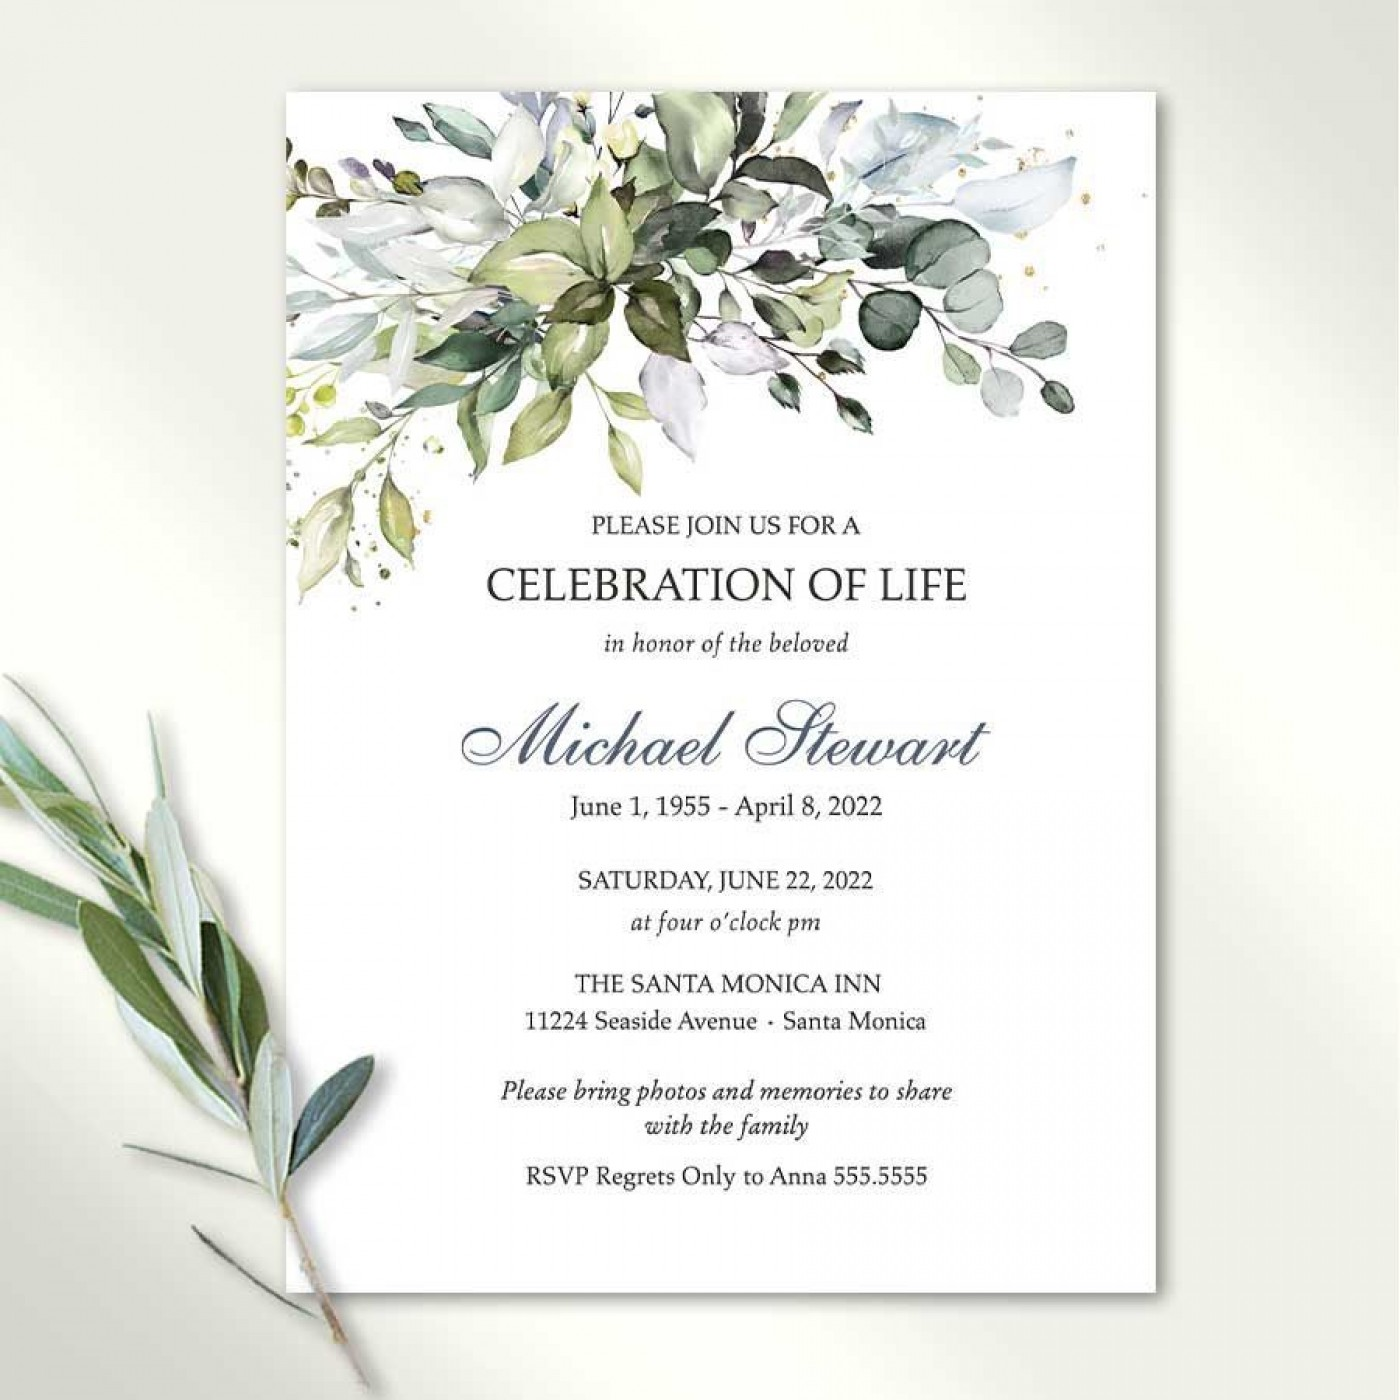 005 Rare Celebration Of Life Invite Template Free Design  Invitation Download1400